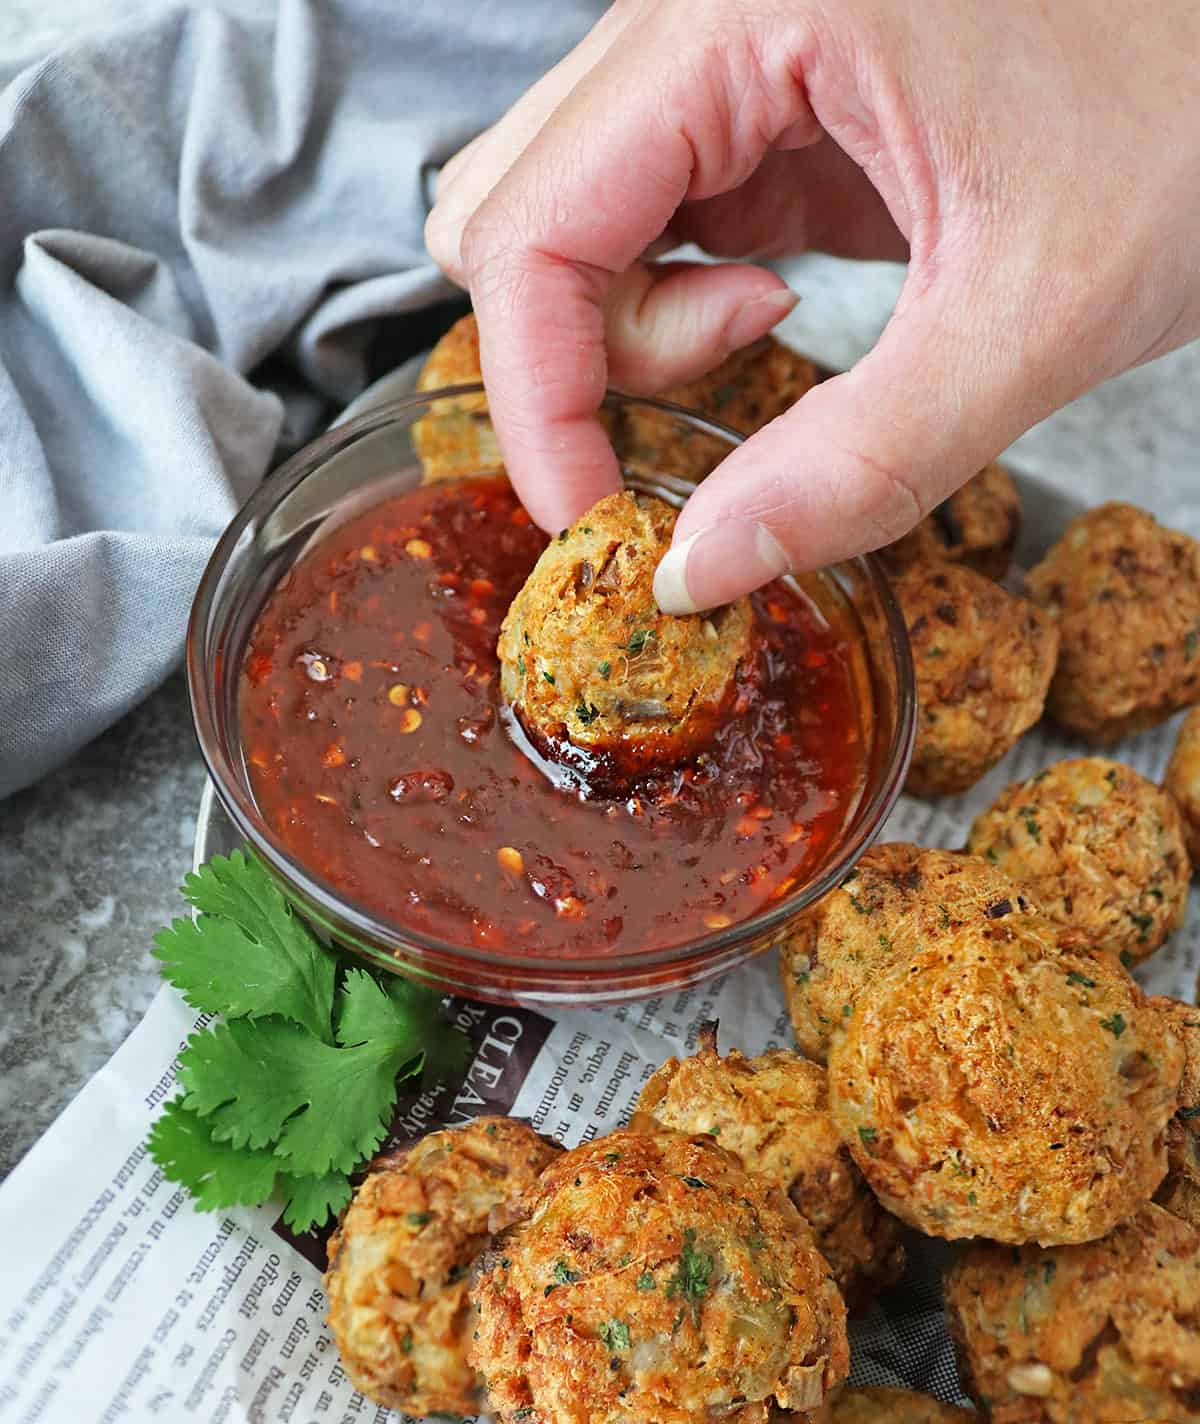 Air fryer salmon croquettes dipped into sweet chili sauce.